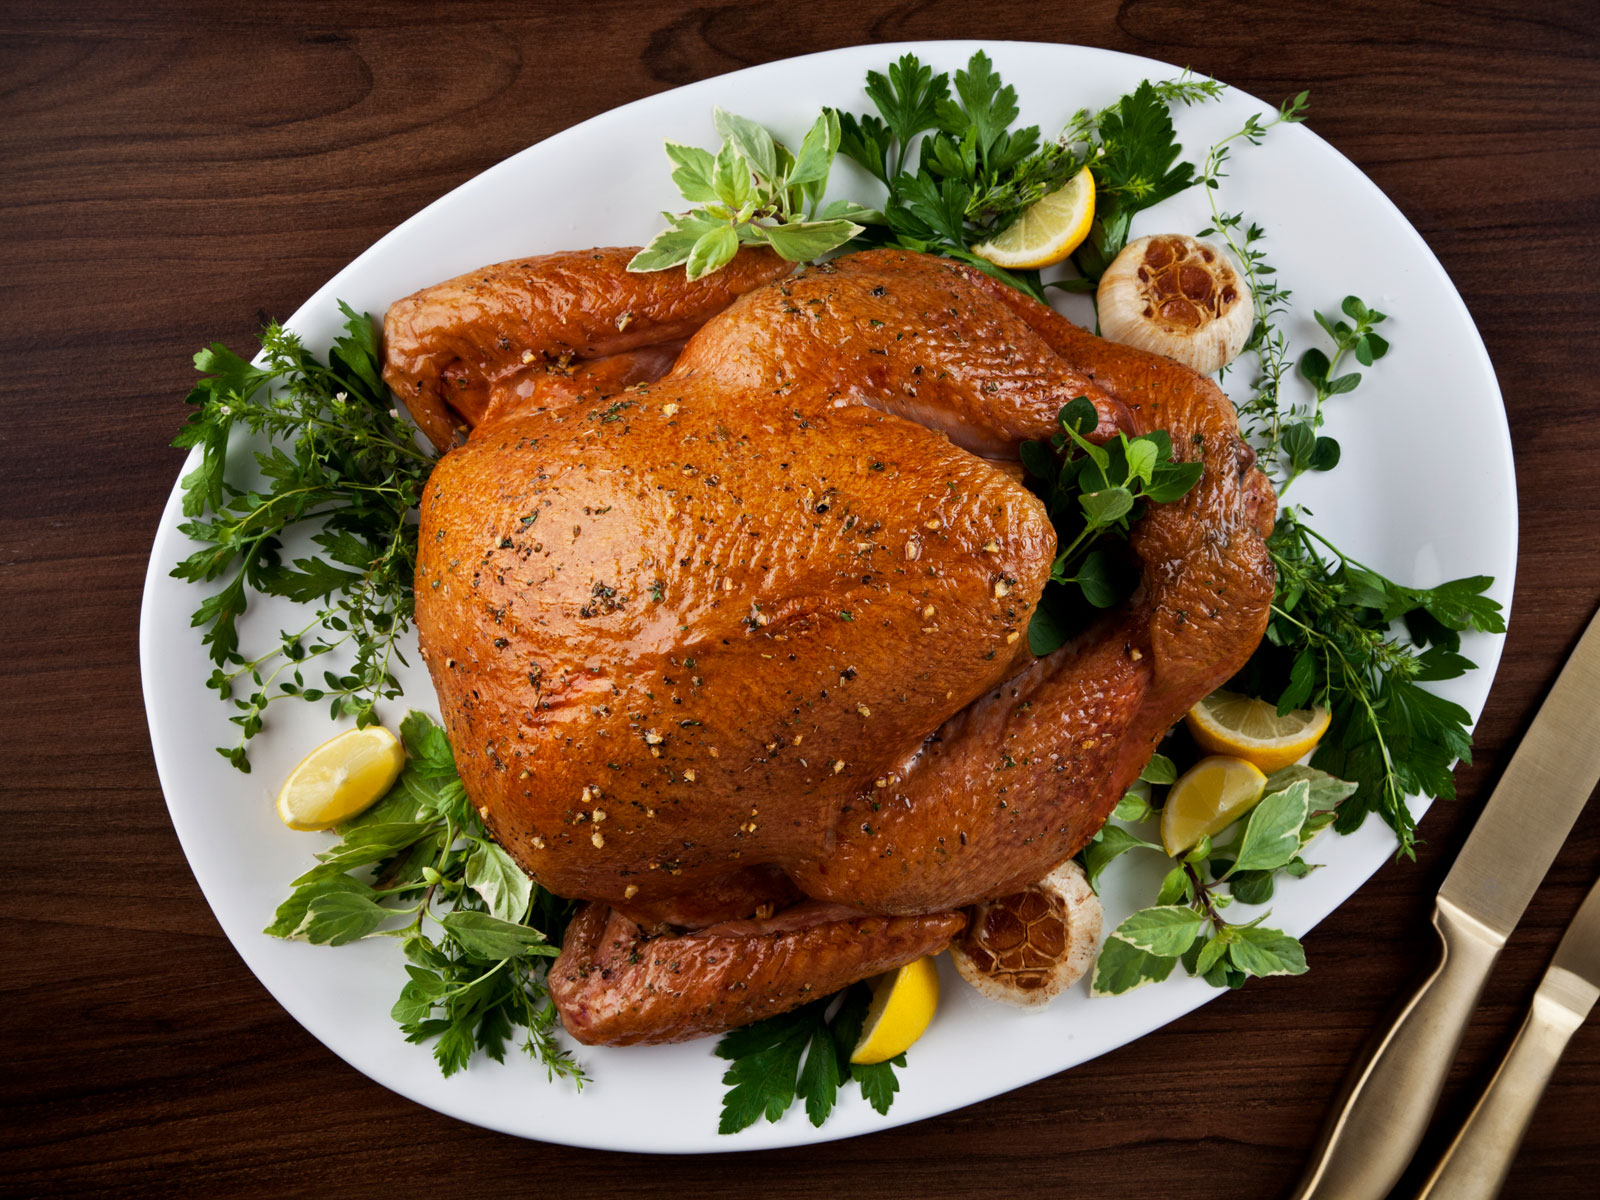 How to Practice Your Turkey Roasting and Carving Skills Before Thanksgiving, According to a Butterball Expert